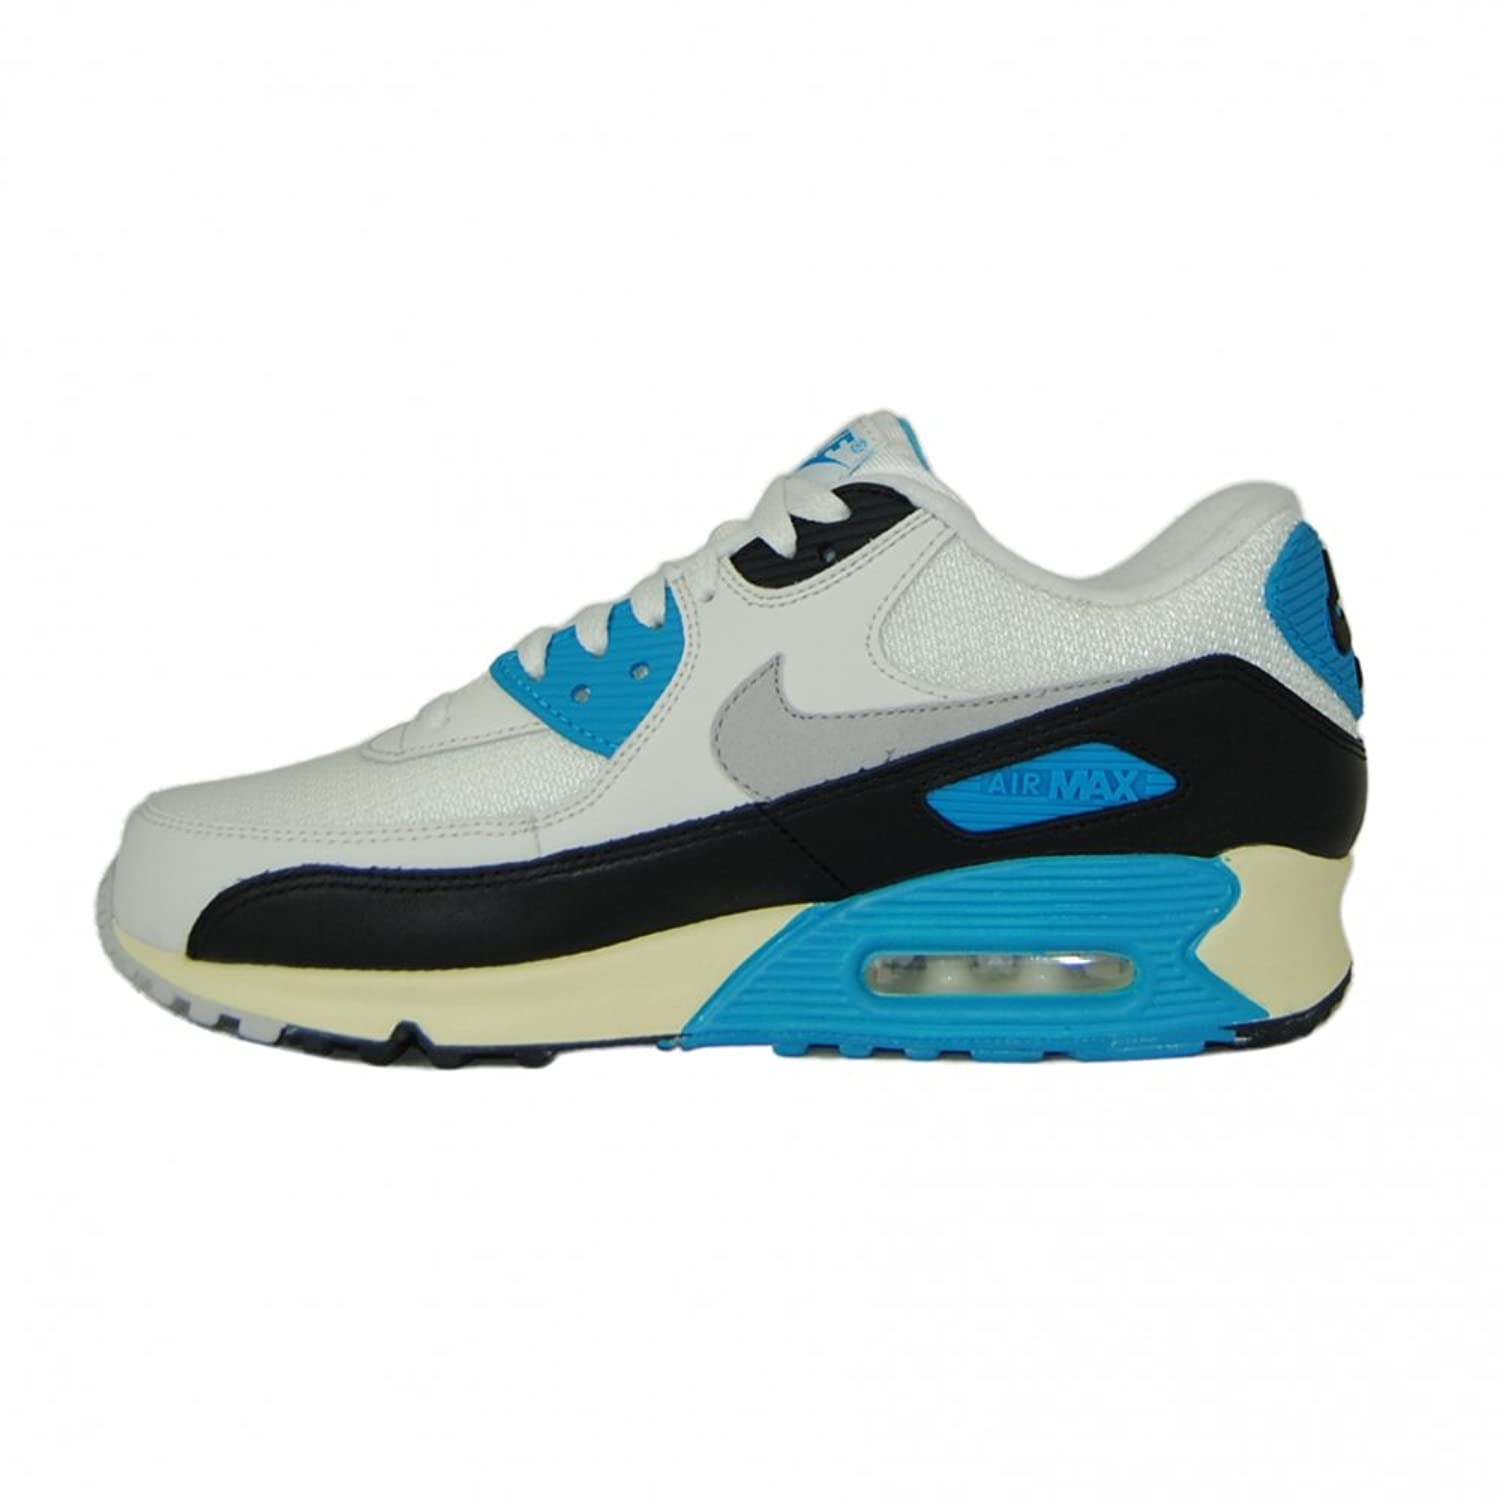 nike shox chaussures dames - Nike Air Max 90 Laser Blue Amazon | Continuing & Career Education ...